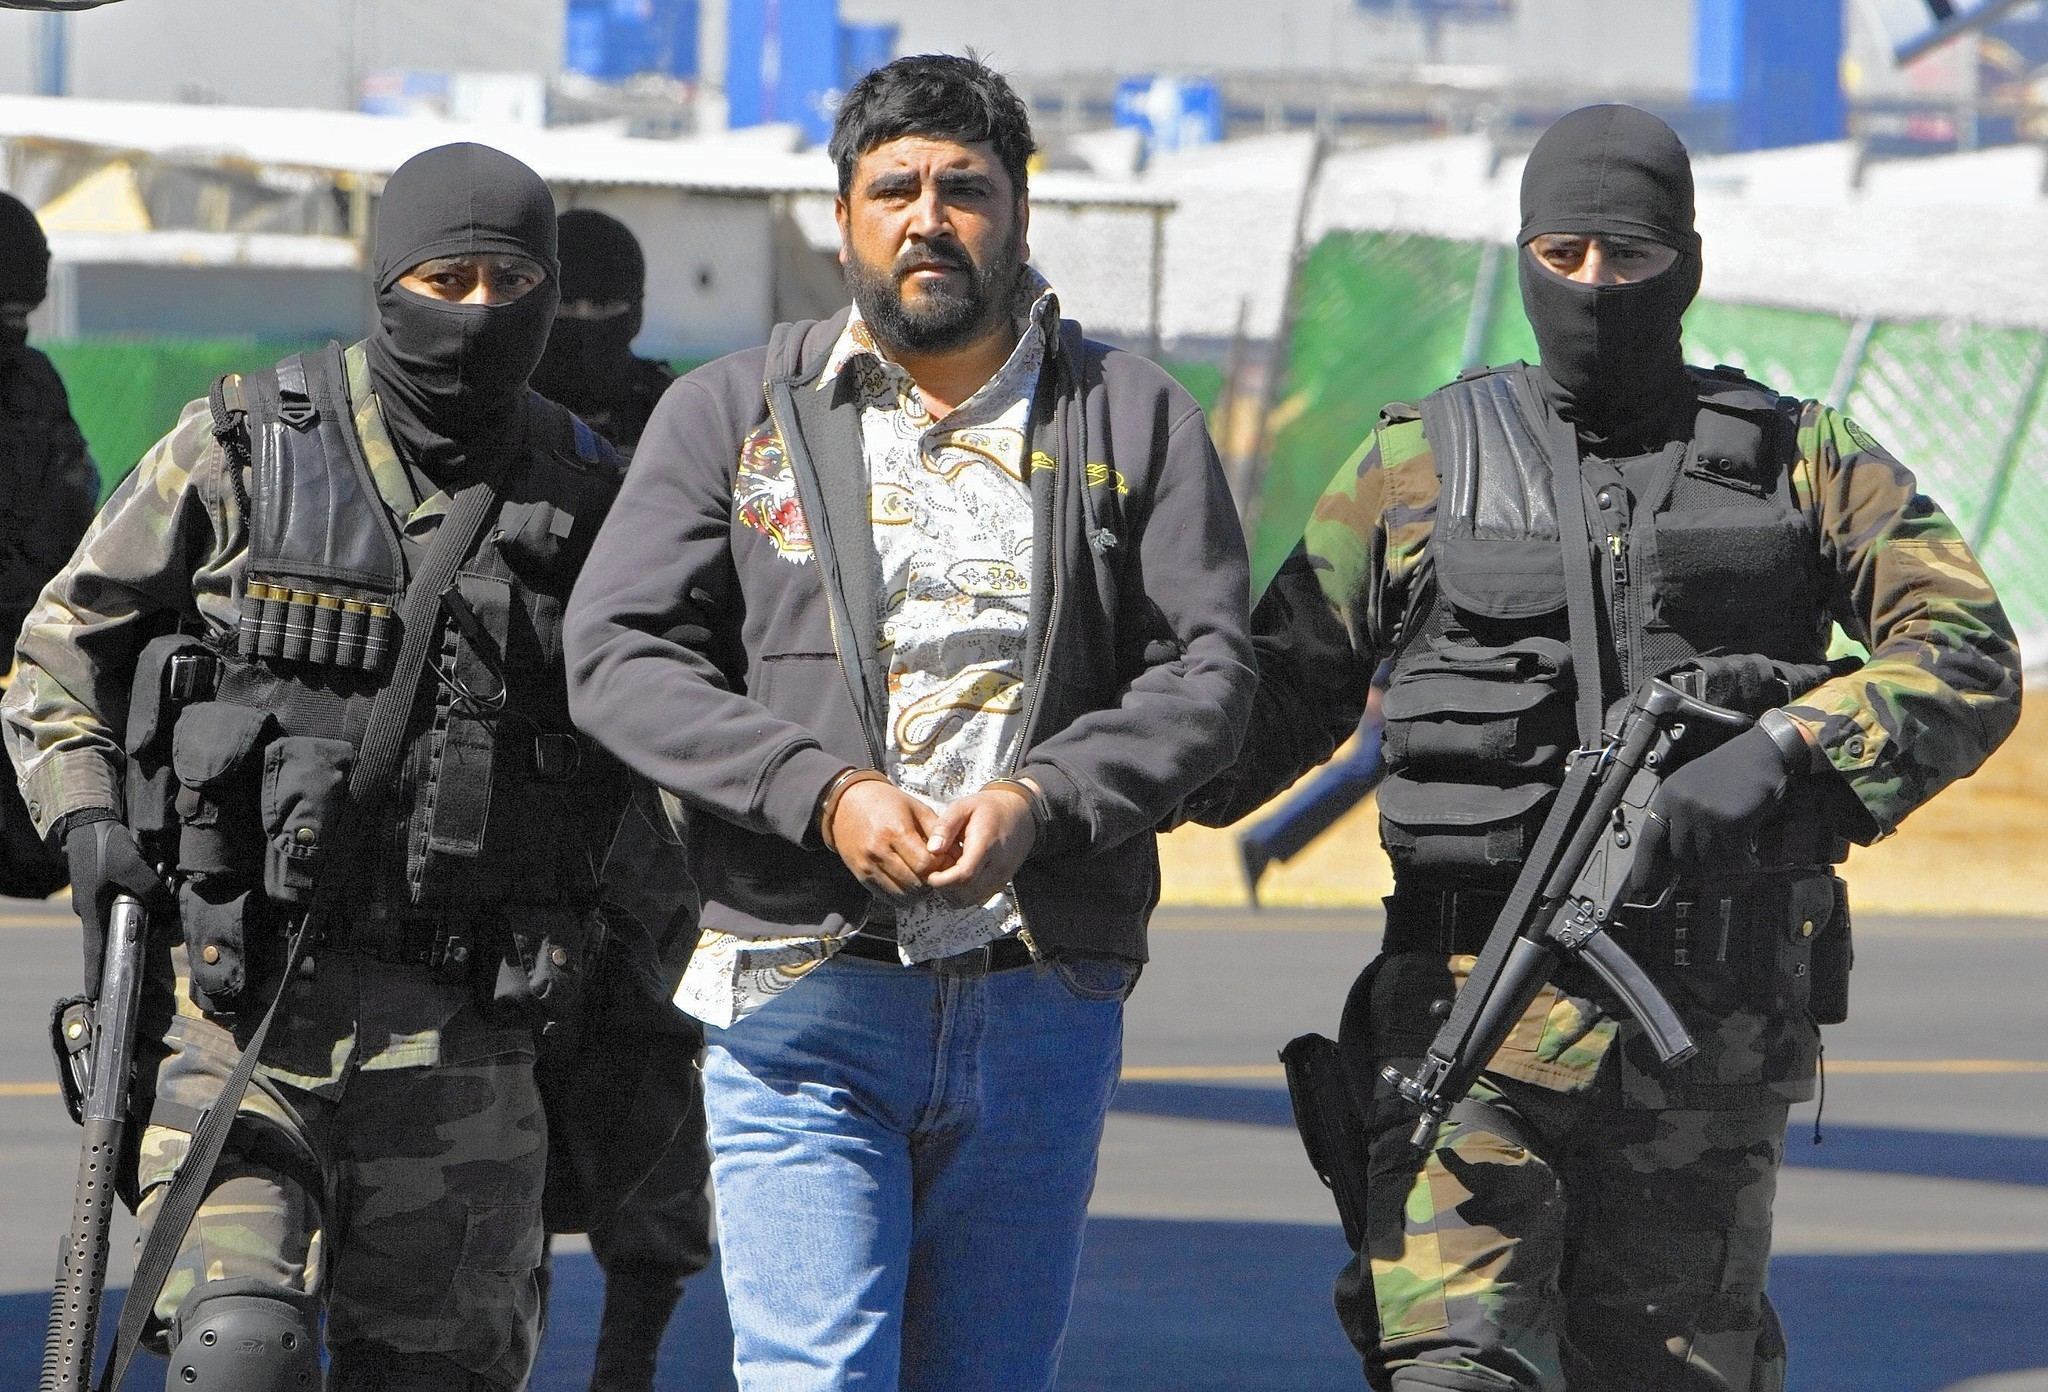 key informant against mexican cartel to testify at